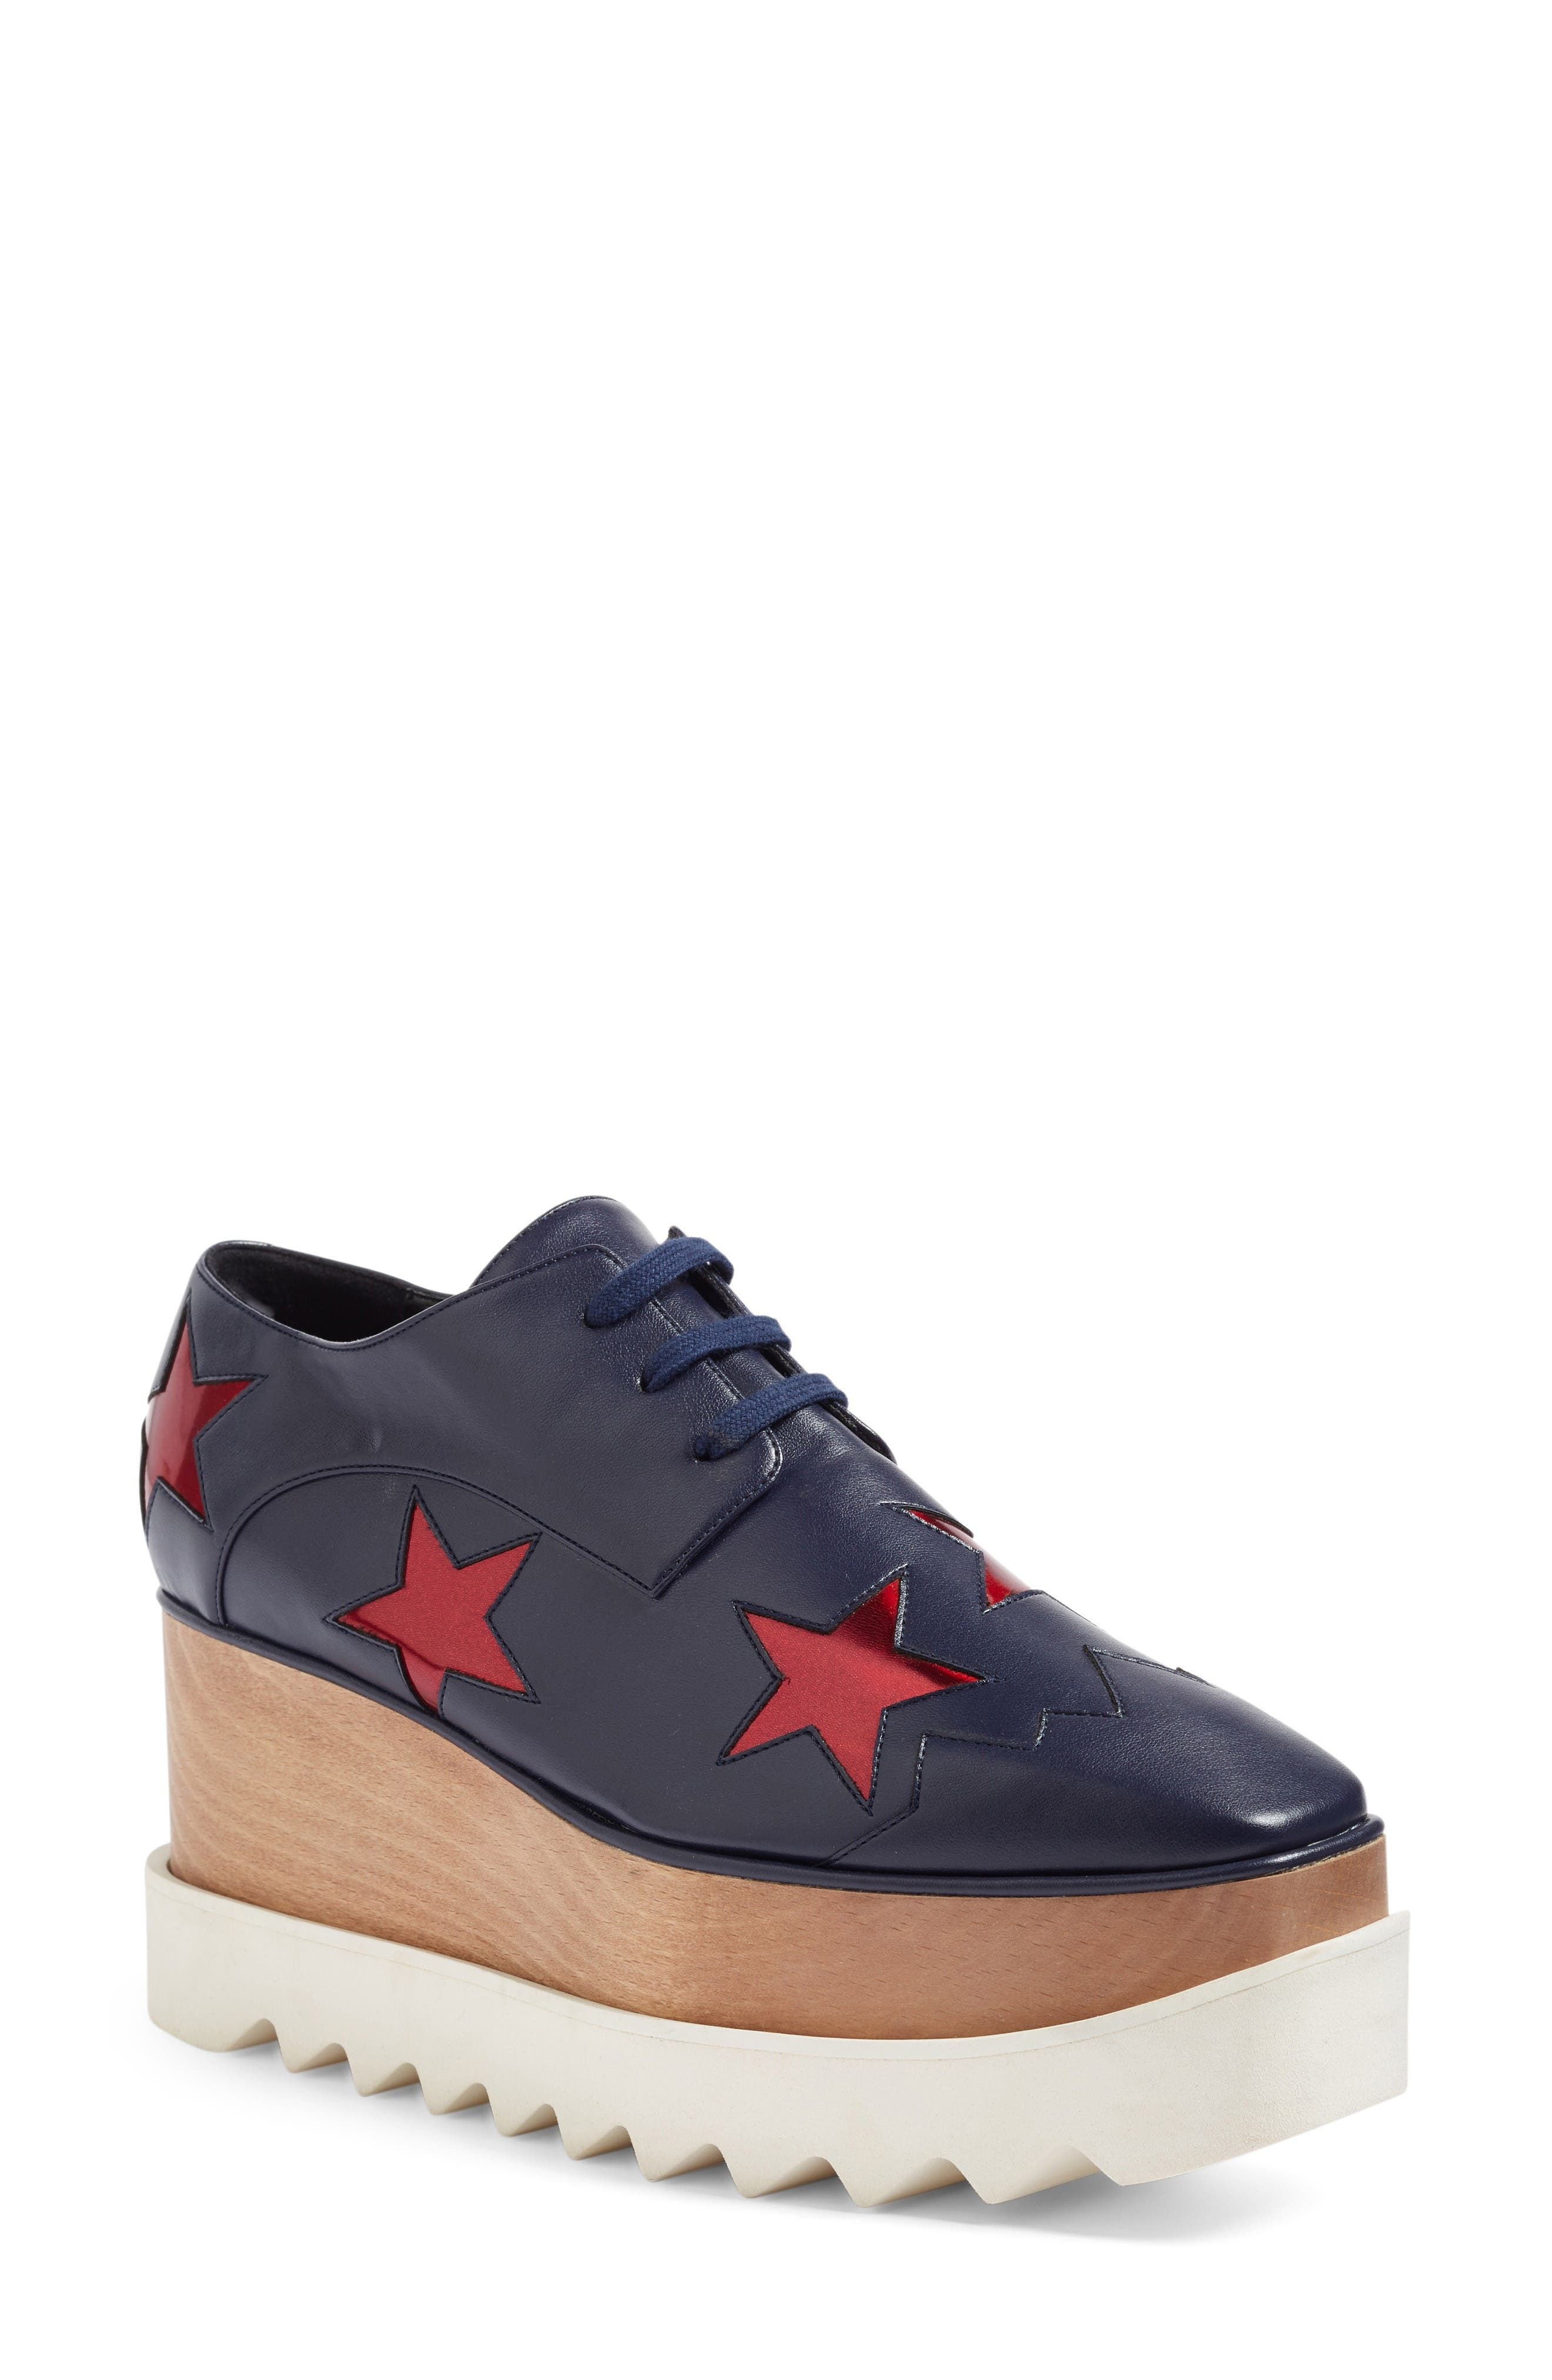 Main Image - Stella McCartney Platform Oxford (Women)